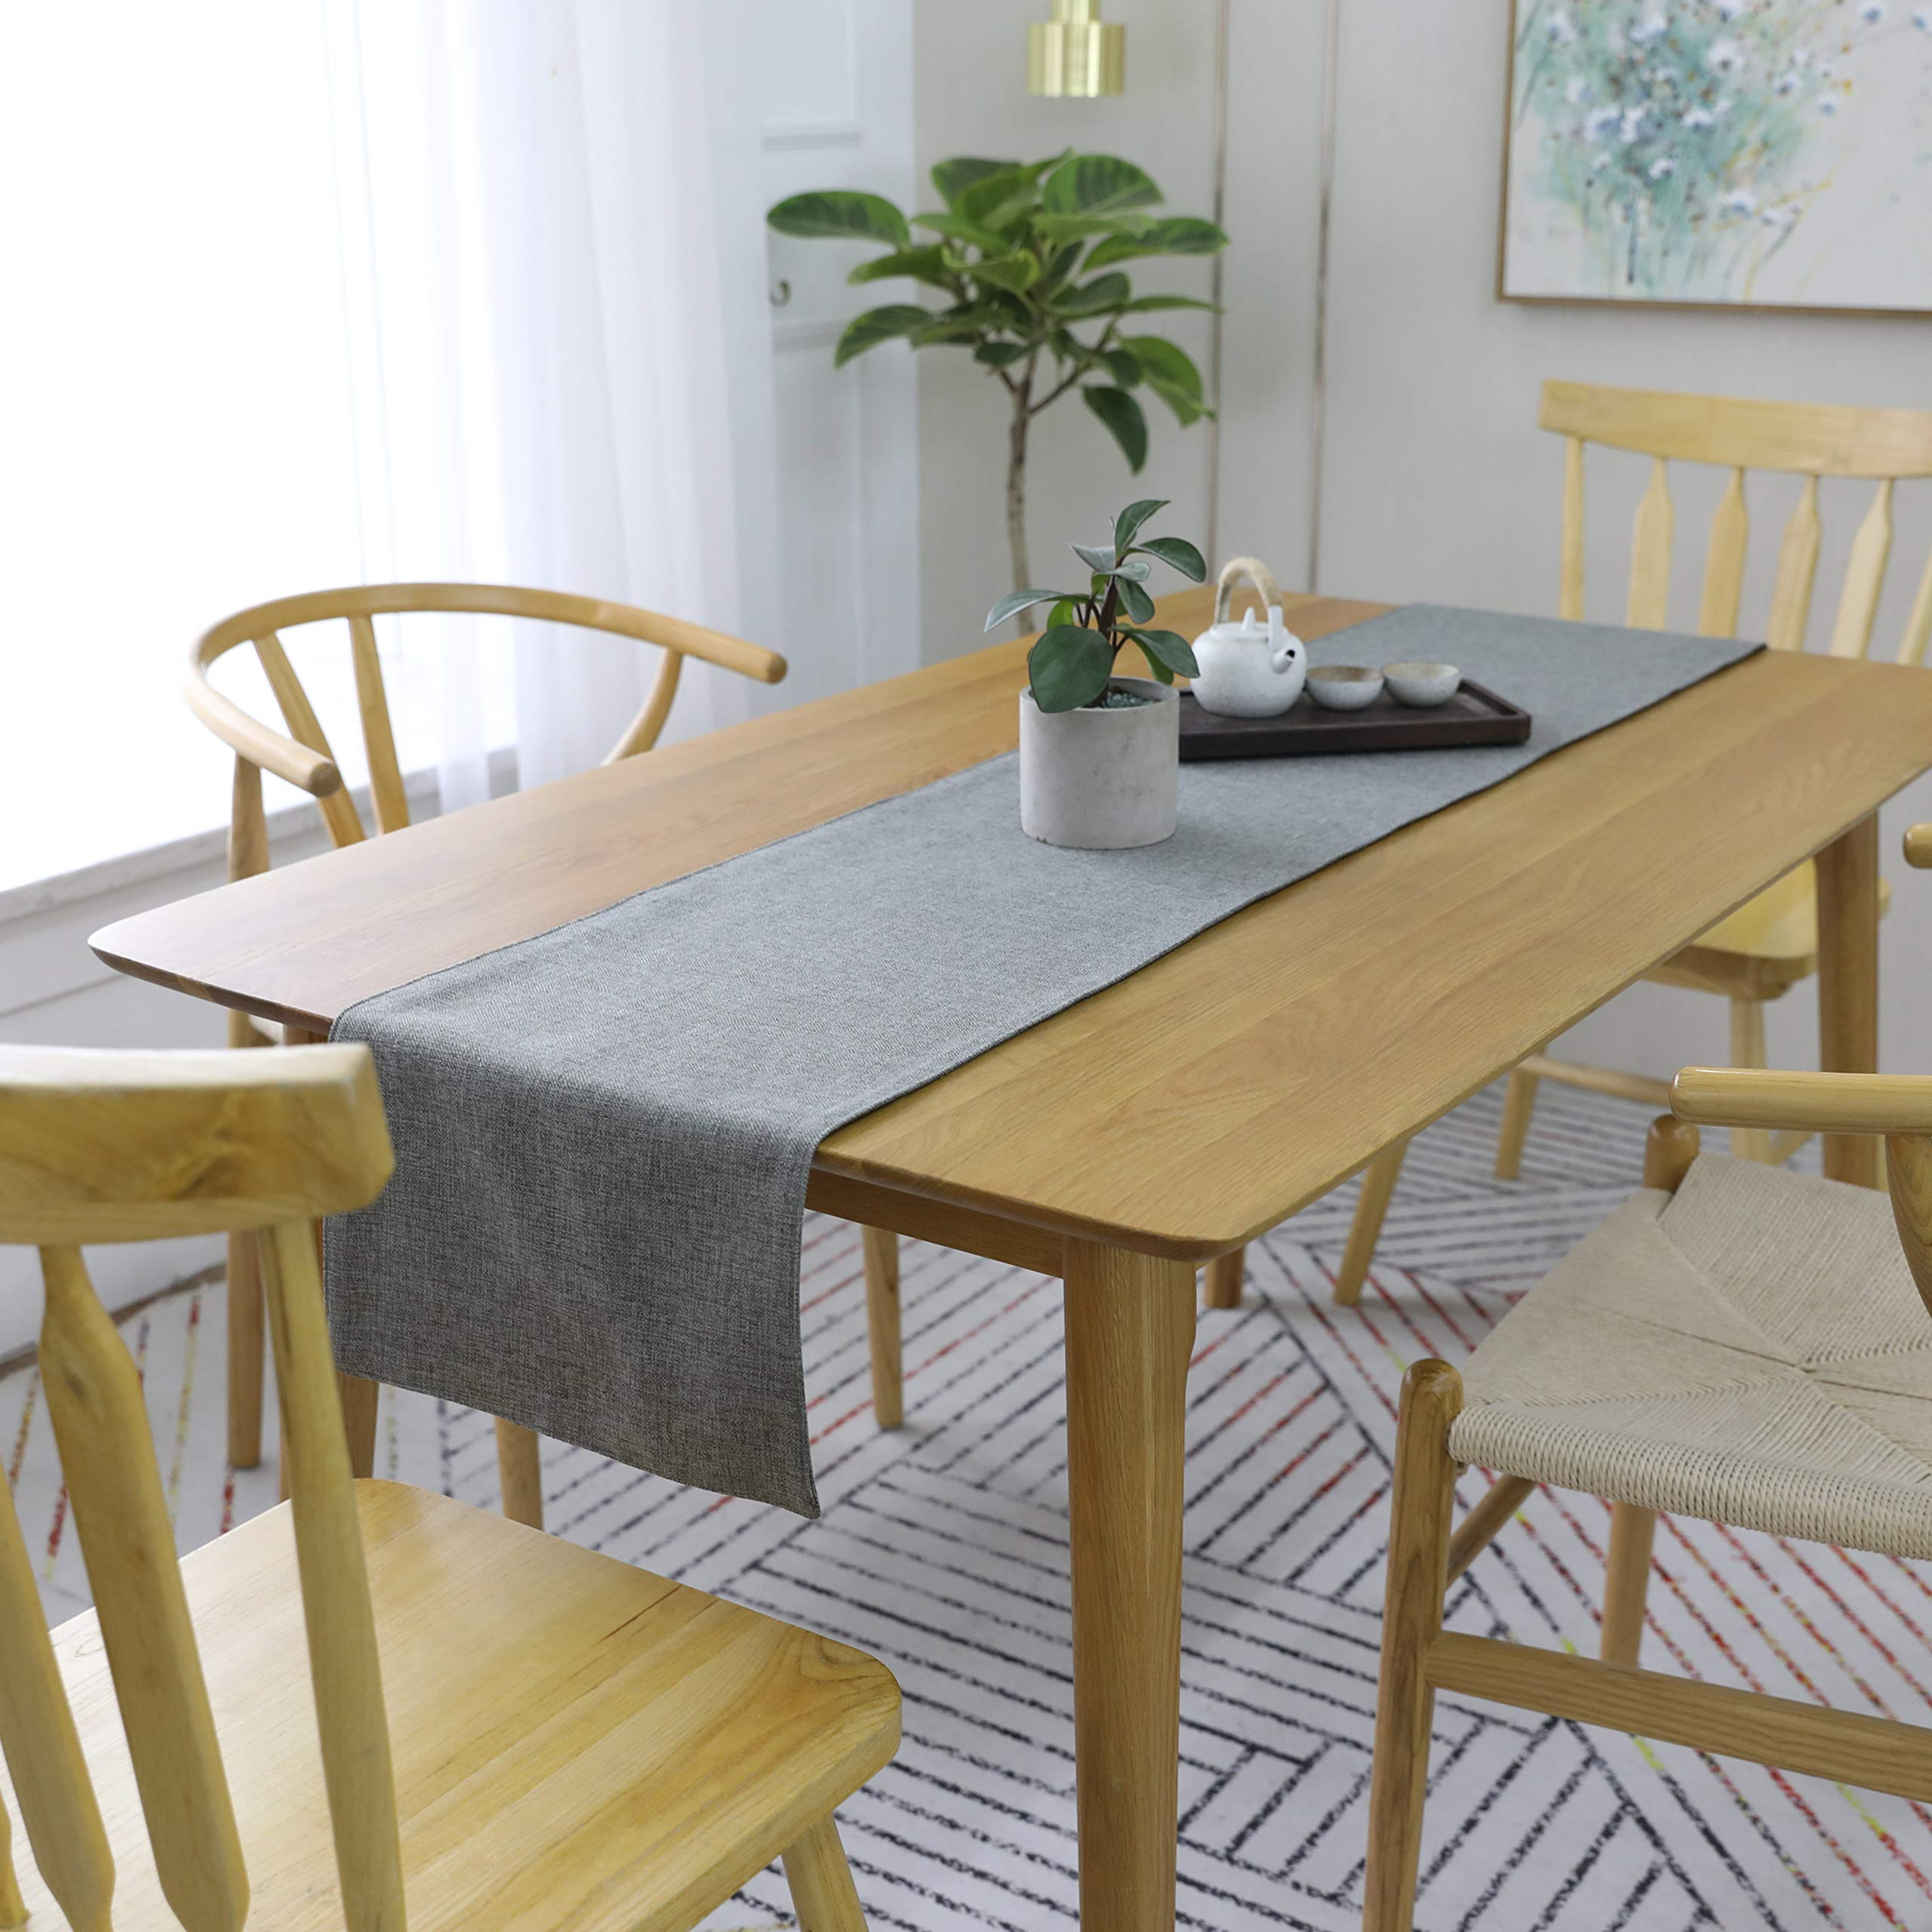 HOME BRILLIANT Gray Dinning Table Runner 12 x 72 Inches Kitchen Coffee Burlap Table Runner for Holiday Party, Dark Grey